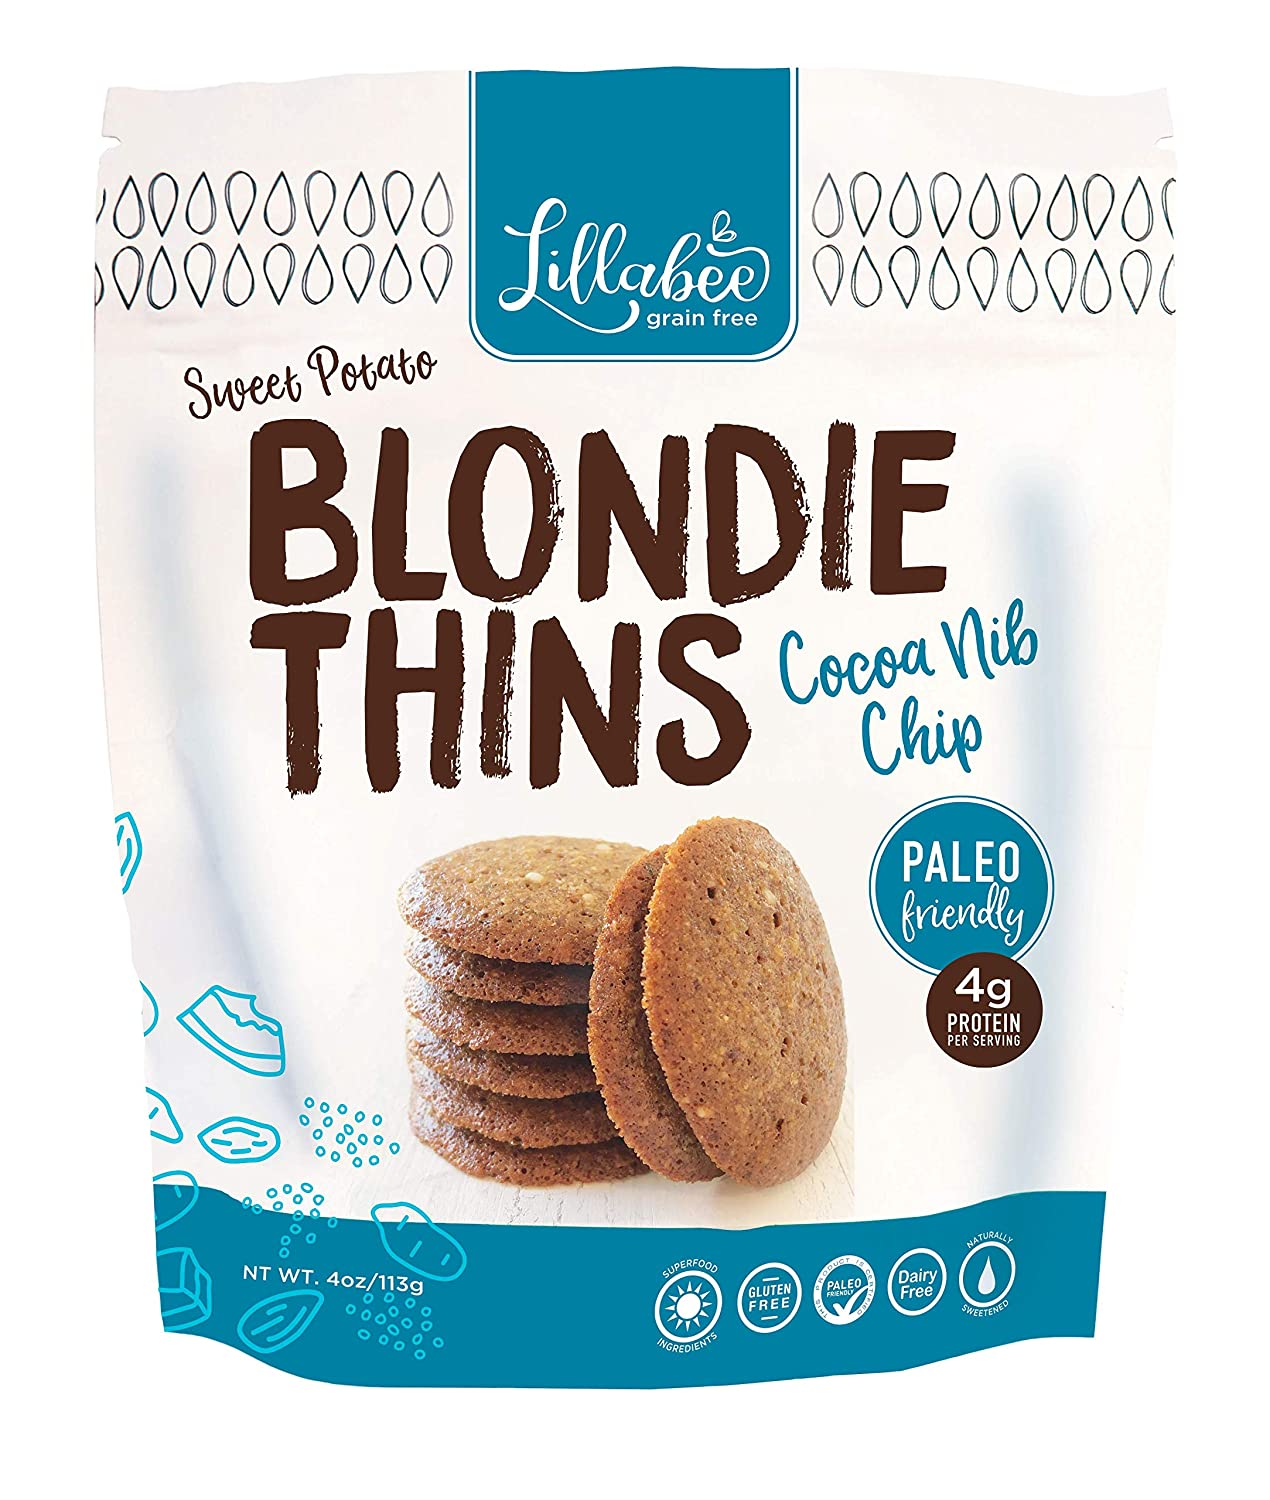 Lillabee Cocoa Nib Chip Blondie Thins Paleo Friendly, Gluten Free, Carb Smart, Healthy Snacks, High Protein, Crunchy Cookies , Grain, Soy and Dairy Free, 4oz bag (3 Pack)